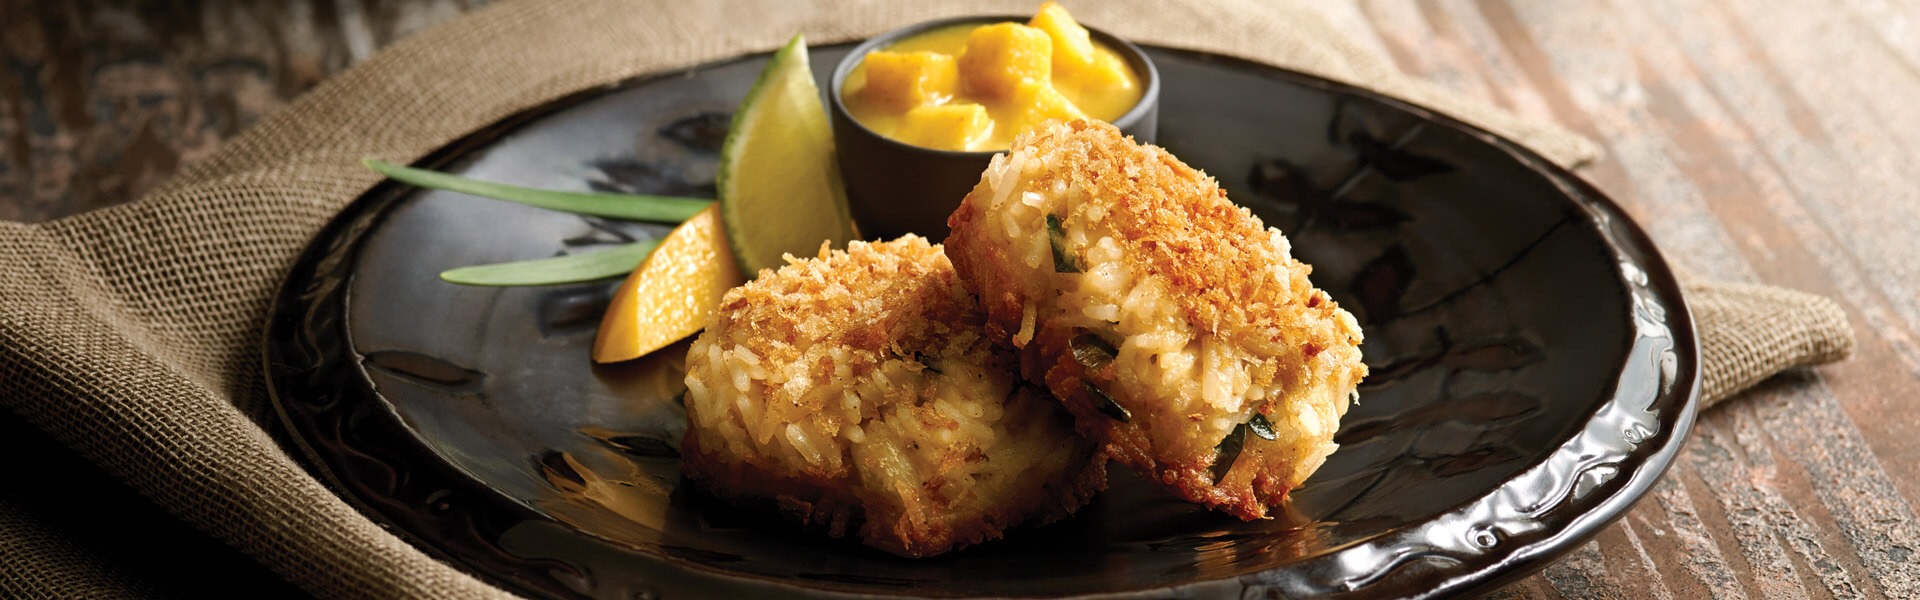 Basmati Rice Crab Cakes with Curried Mango Sauce